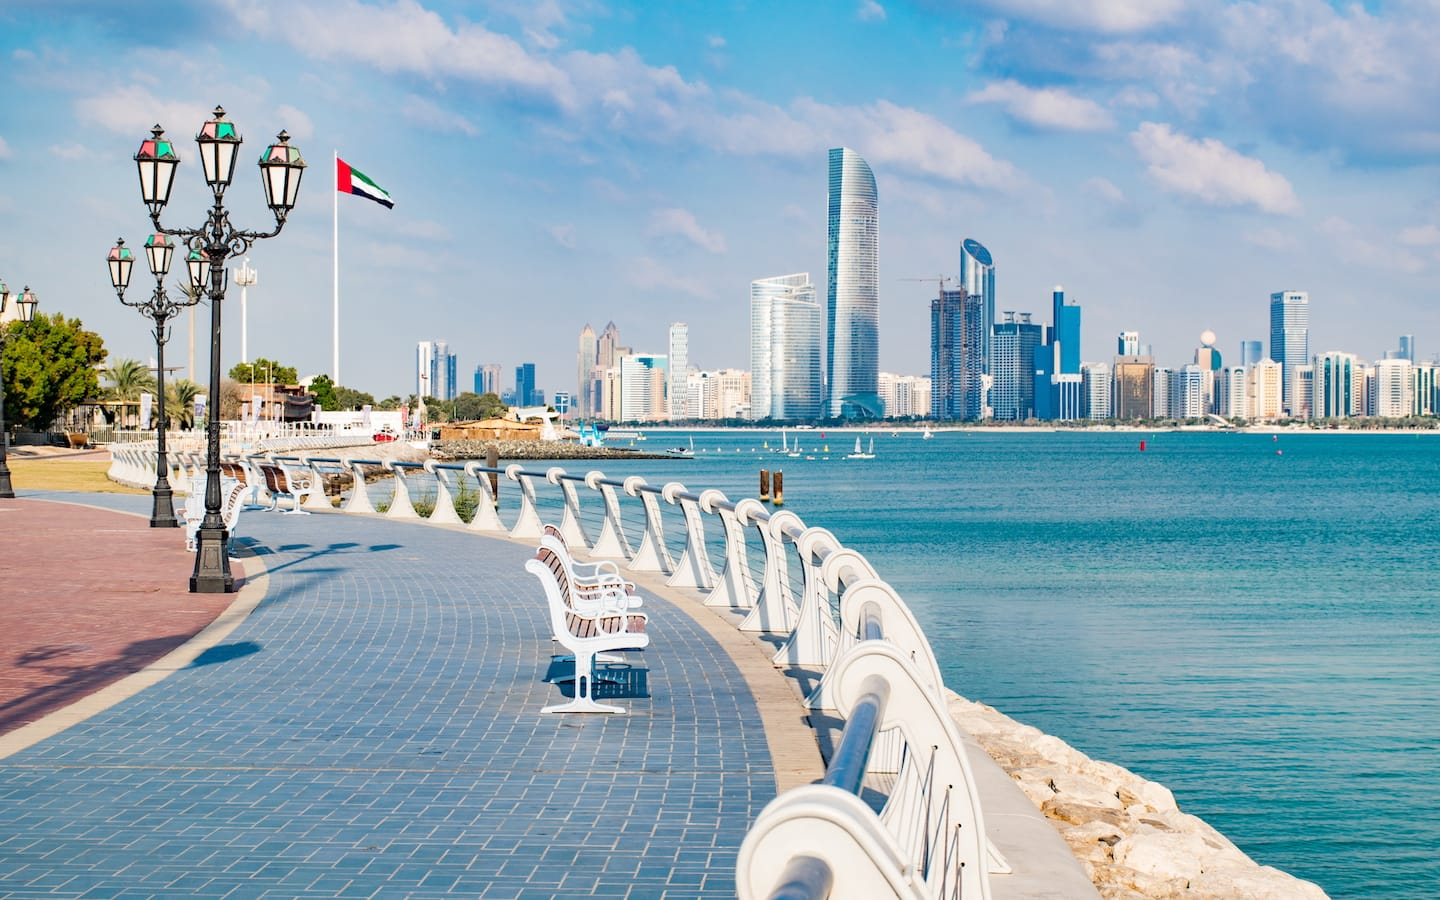 Visiting the Corniche is free things to do in Abu Dhabi today.